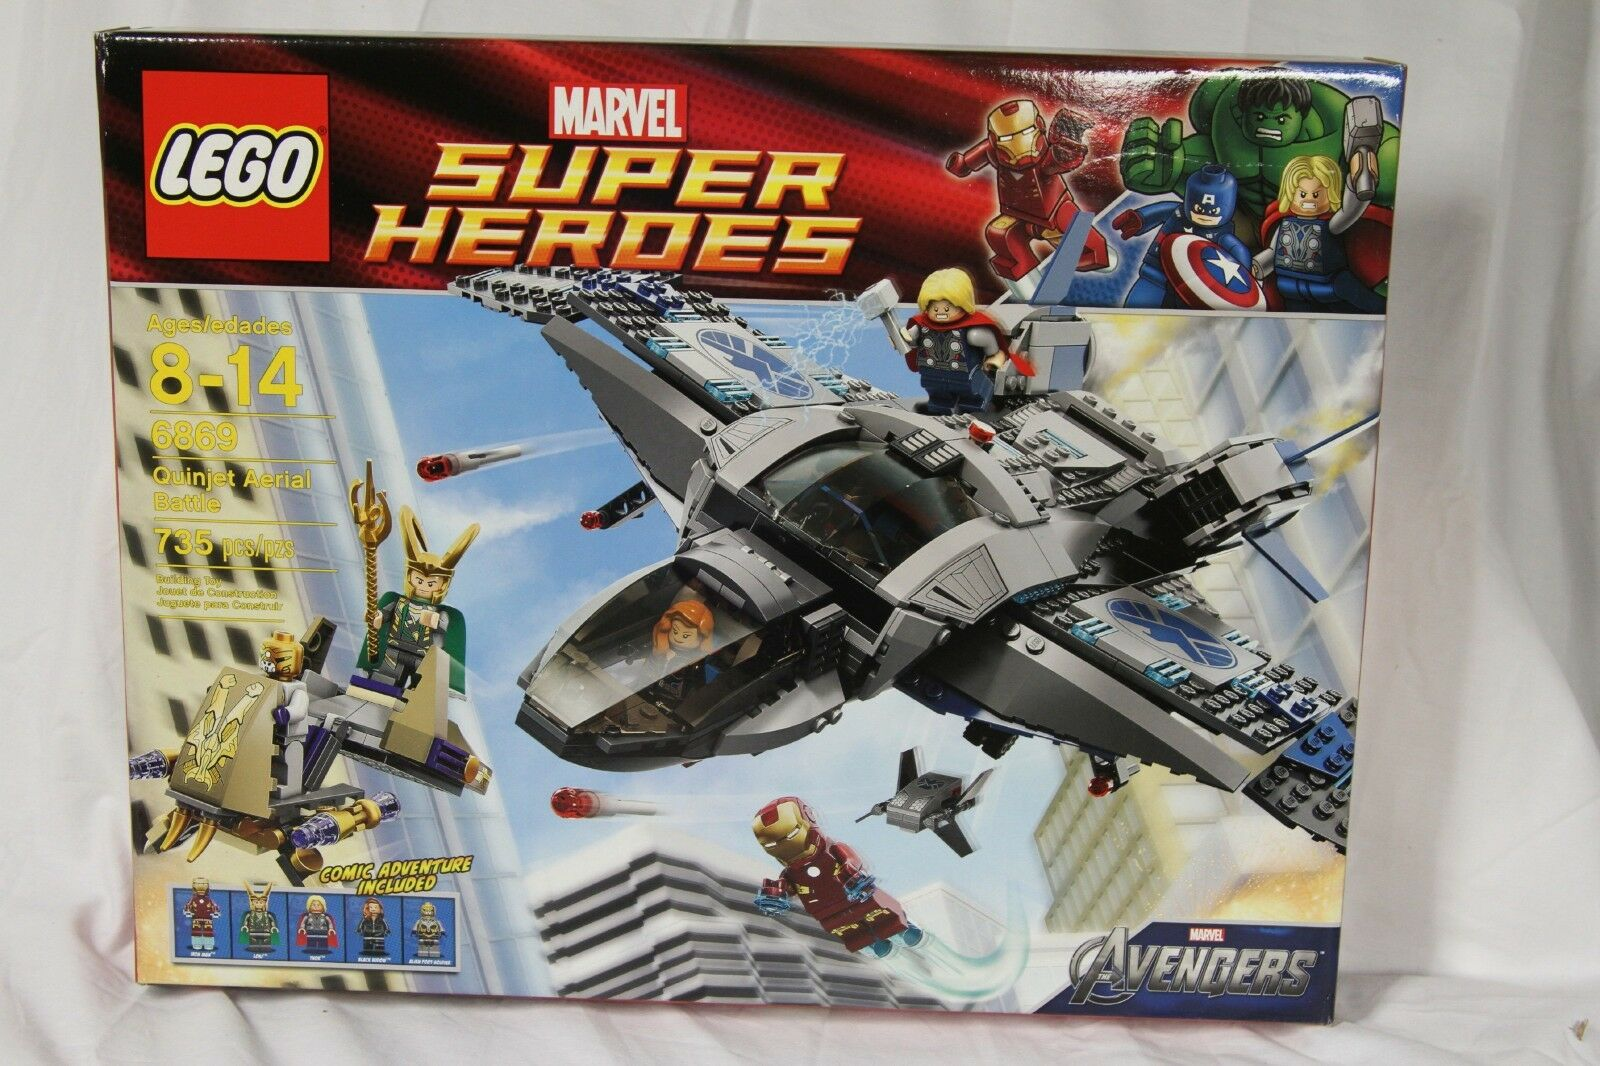 Lego Super Heroes 6869 The Avengers Quinjet Aerial Battle Incl Minifigures NEW